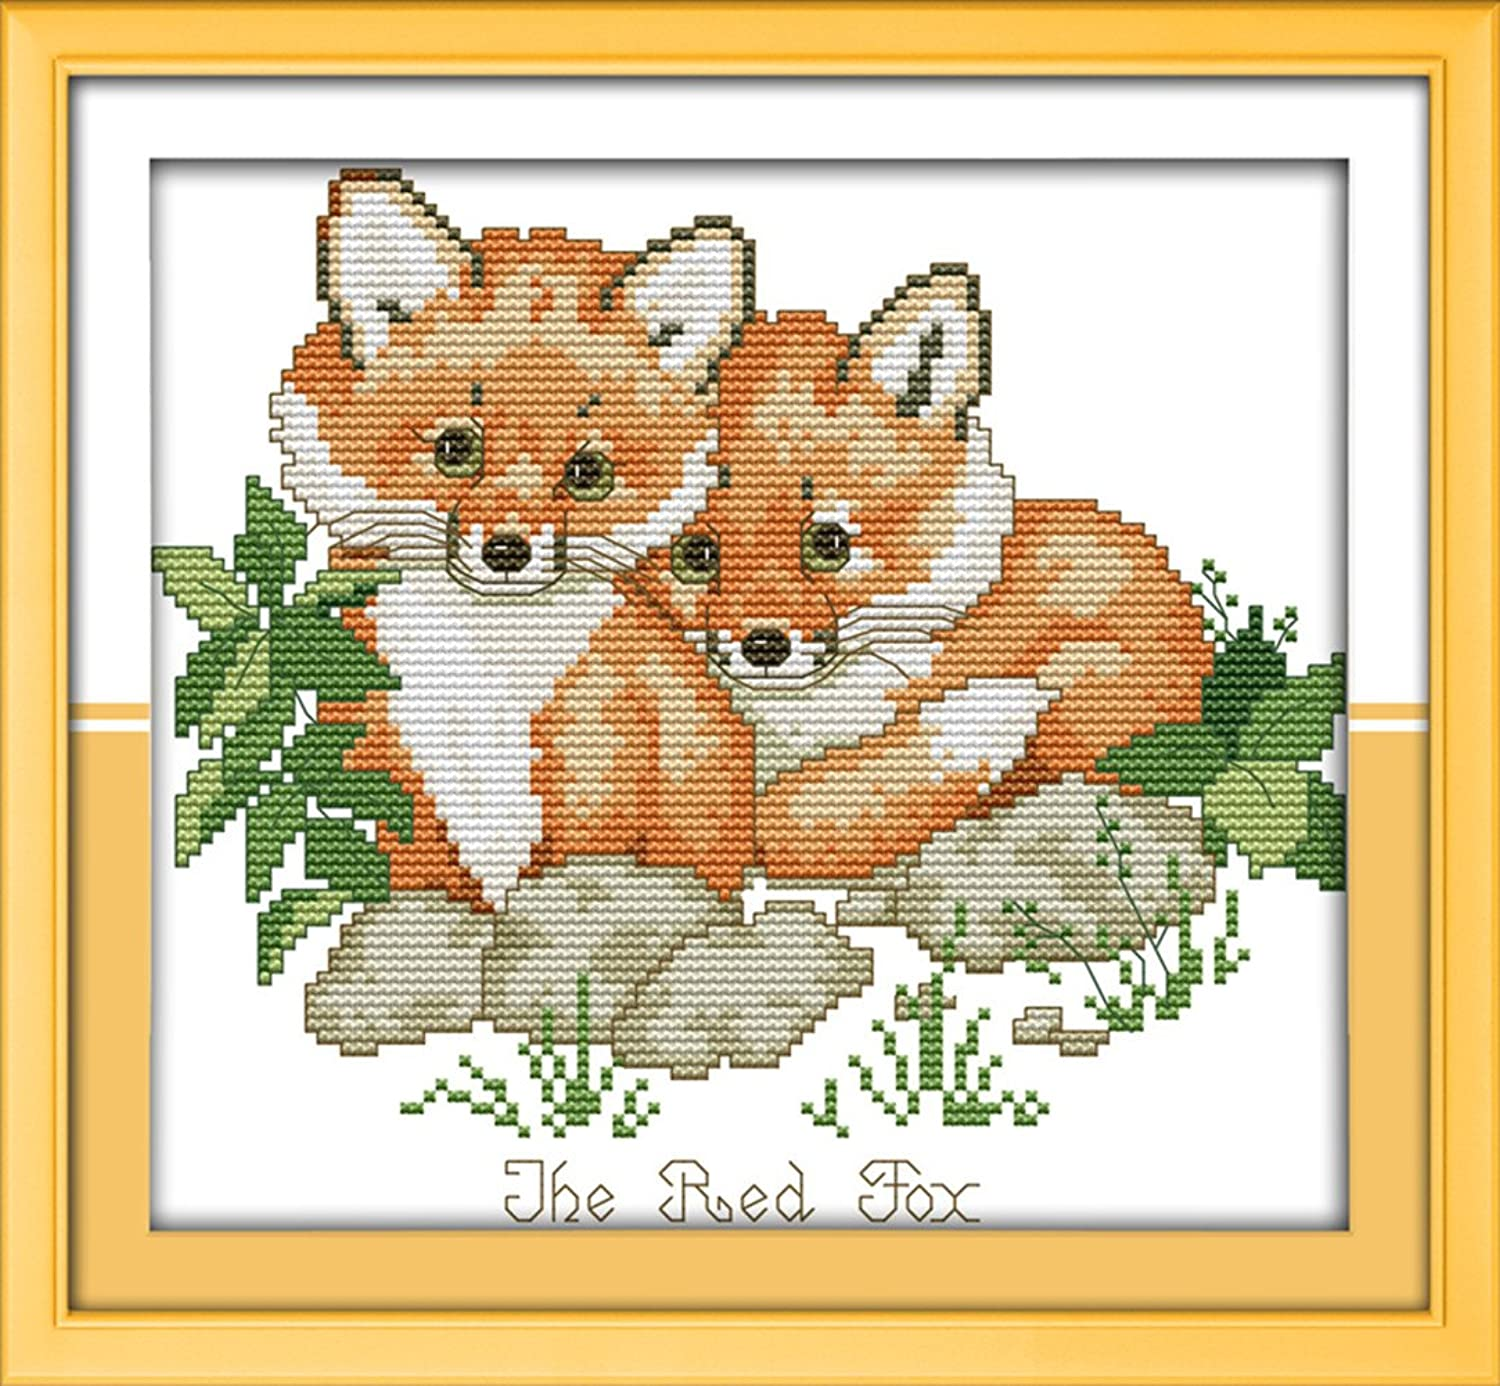 CaptainCrafts Hots Cross Stitch Kits Patterns Embroidery Kit - Red Foxes (STAMPED)